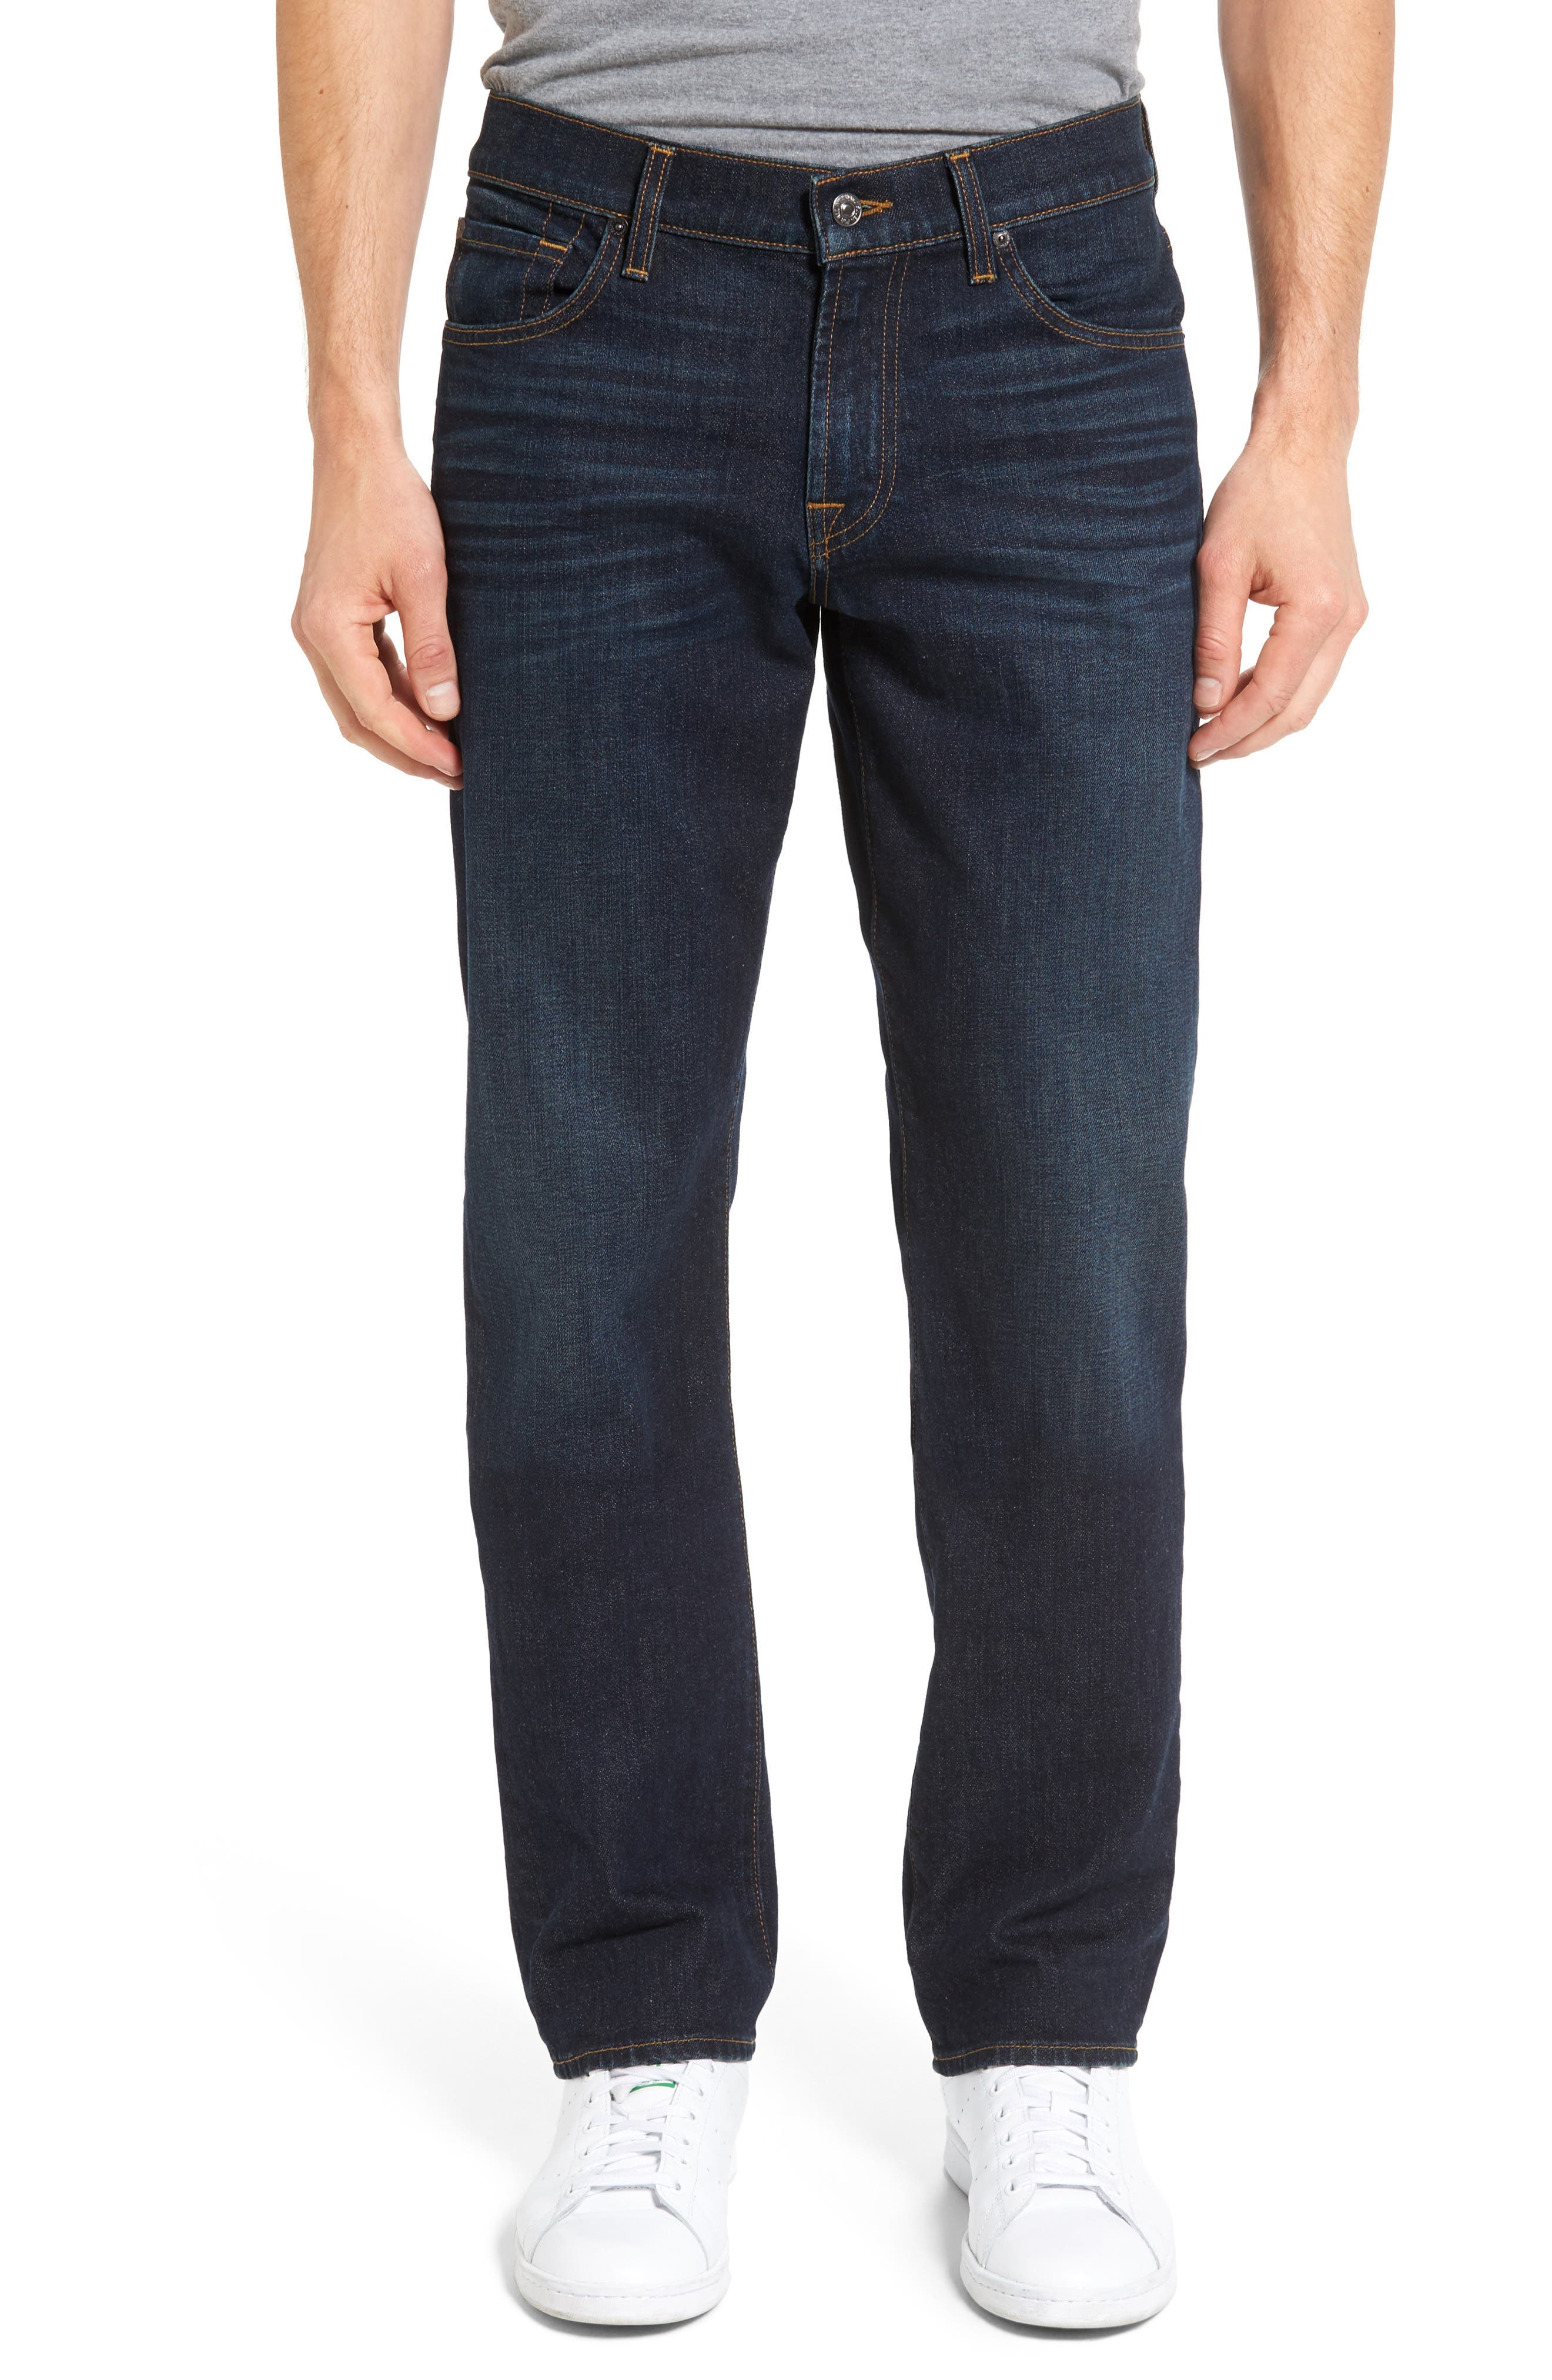 Alternate Image 1 Selected - 7 For All Mankind® Standard Straight Leg Jeans (Pike)